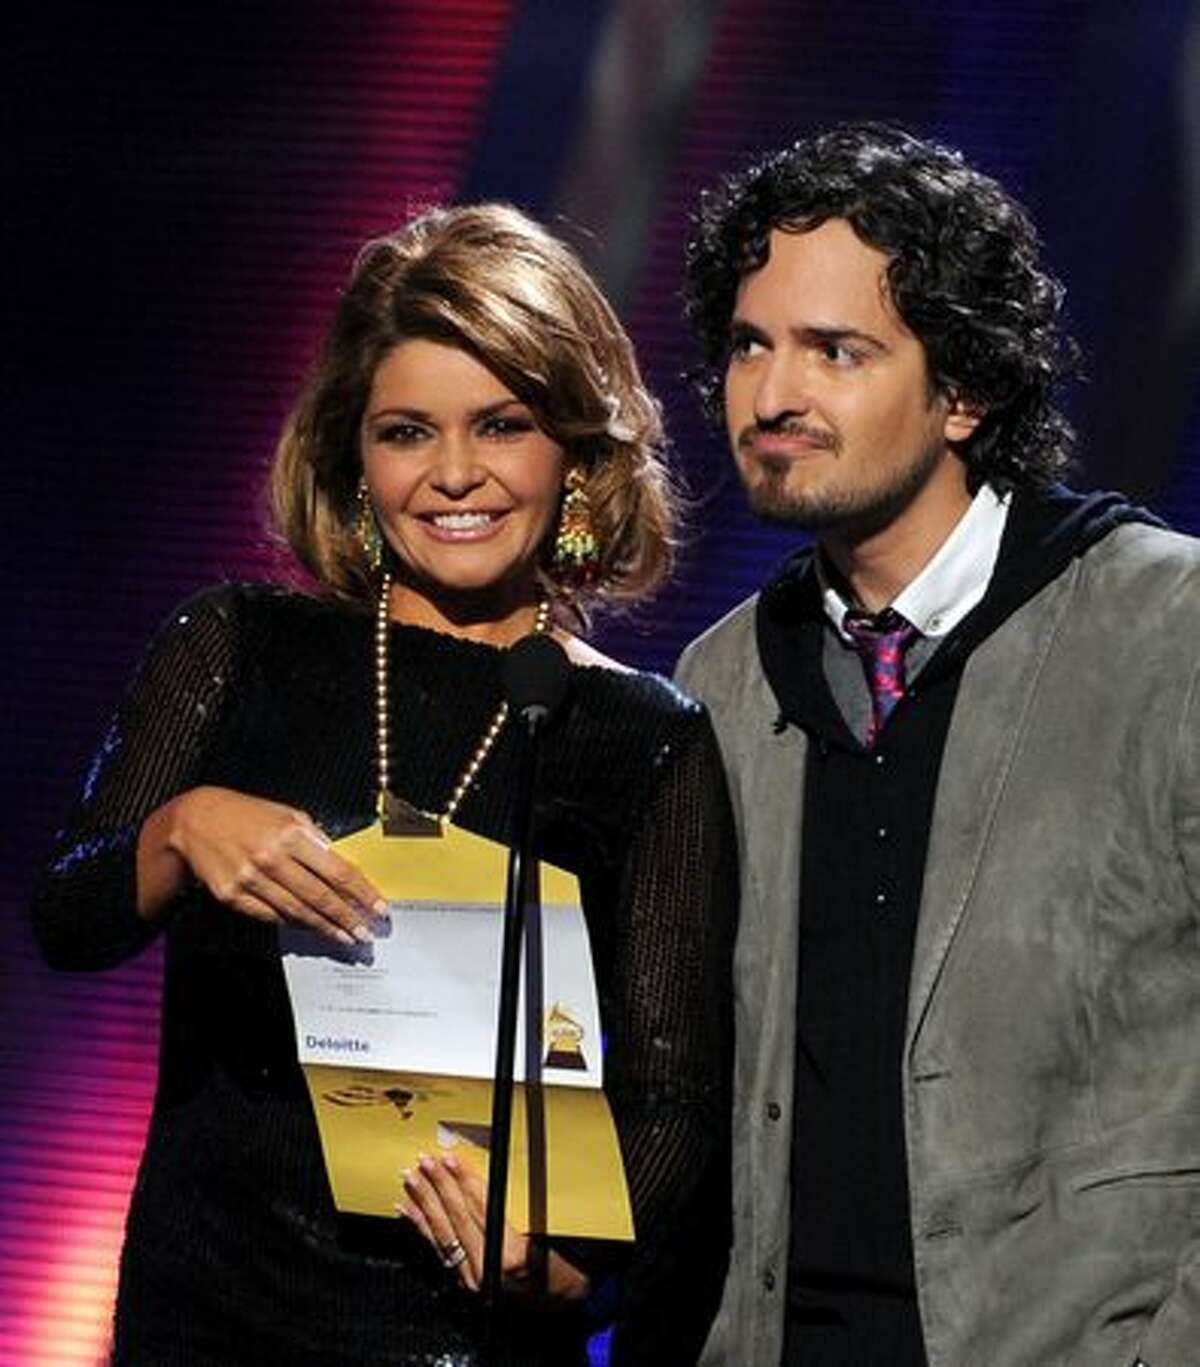 Actress Itati Cantoral (L) and singer Tommy Torres present an award onstage during the 11th annual Latin GRAMMY Awards at the Mandalay Bay Events Center in Las Vegas, Nevada.